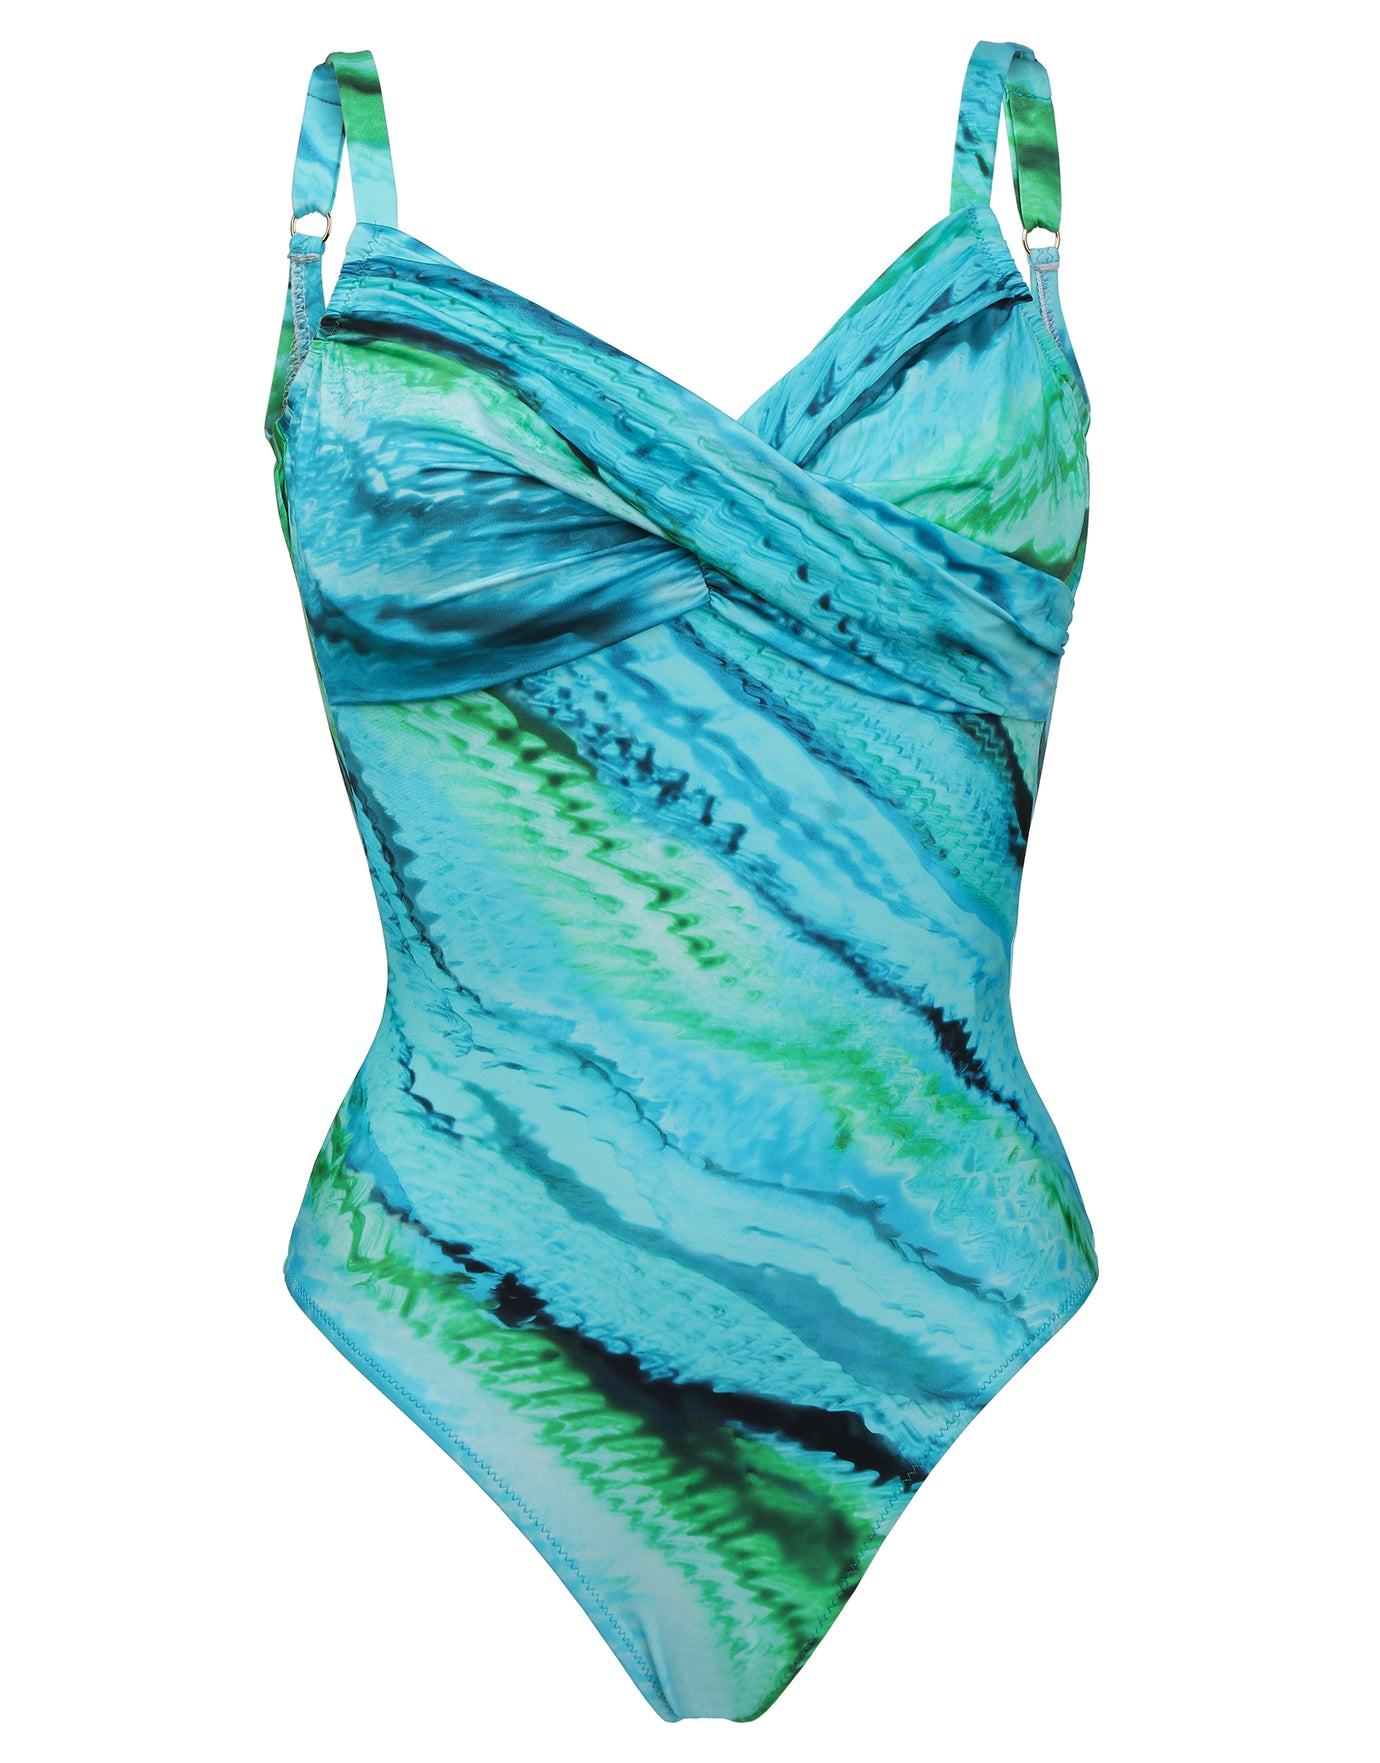 Roidal Oceanic Underwired Crossover Swimsuit - Turquoise